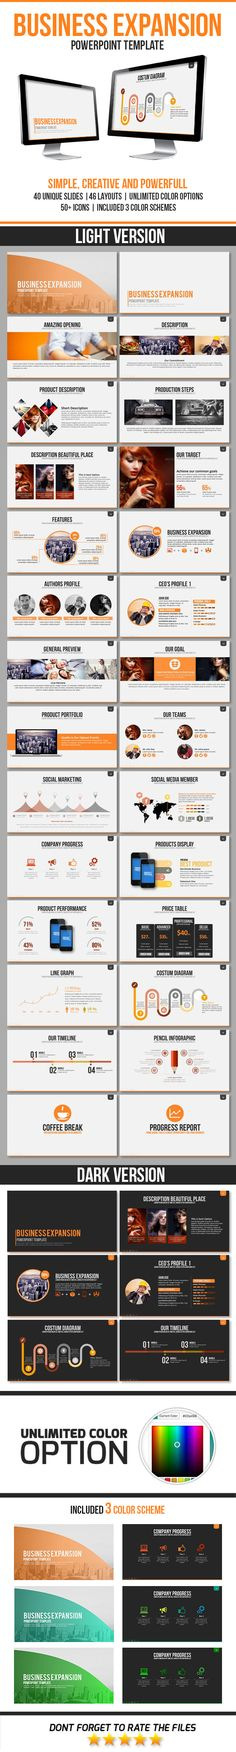 Business Expansion PowerPoint Template #presentation #design Download: http://graphicriver.net/item/business-expansion-powerpoint-template/11469964?ref=ksioks